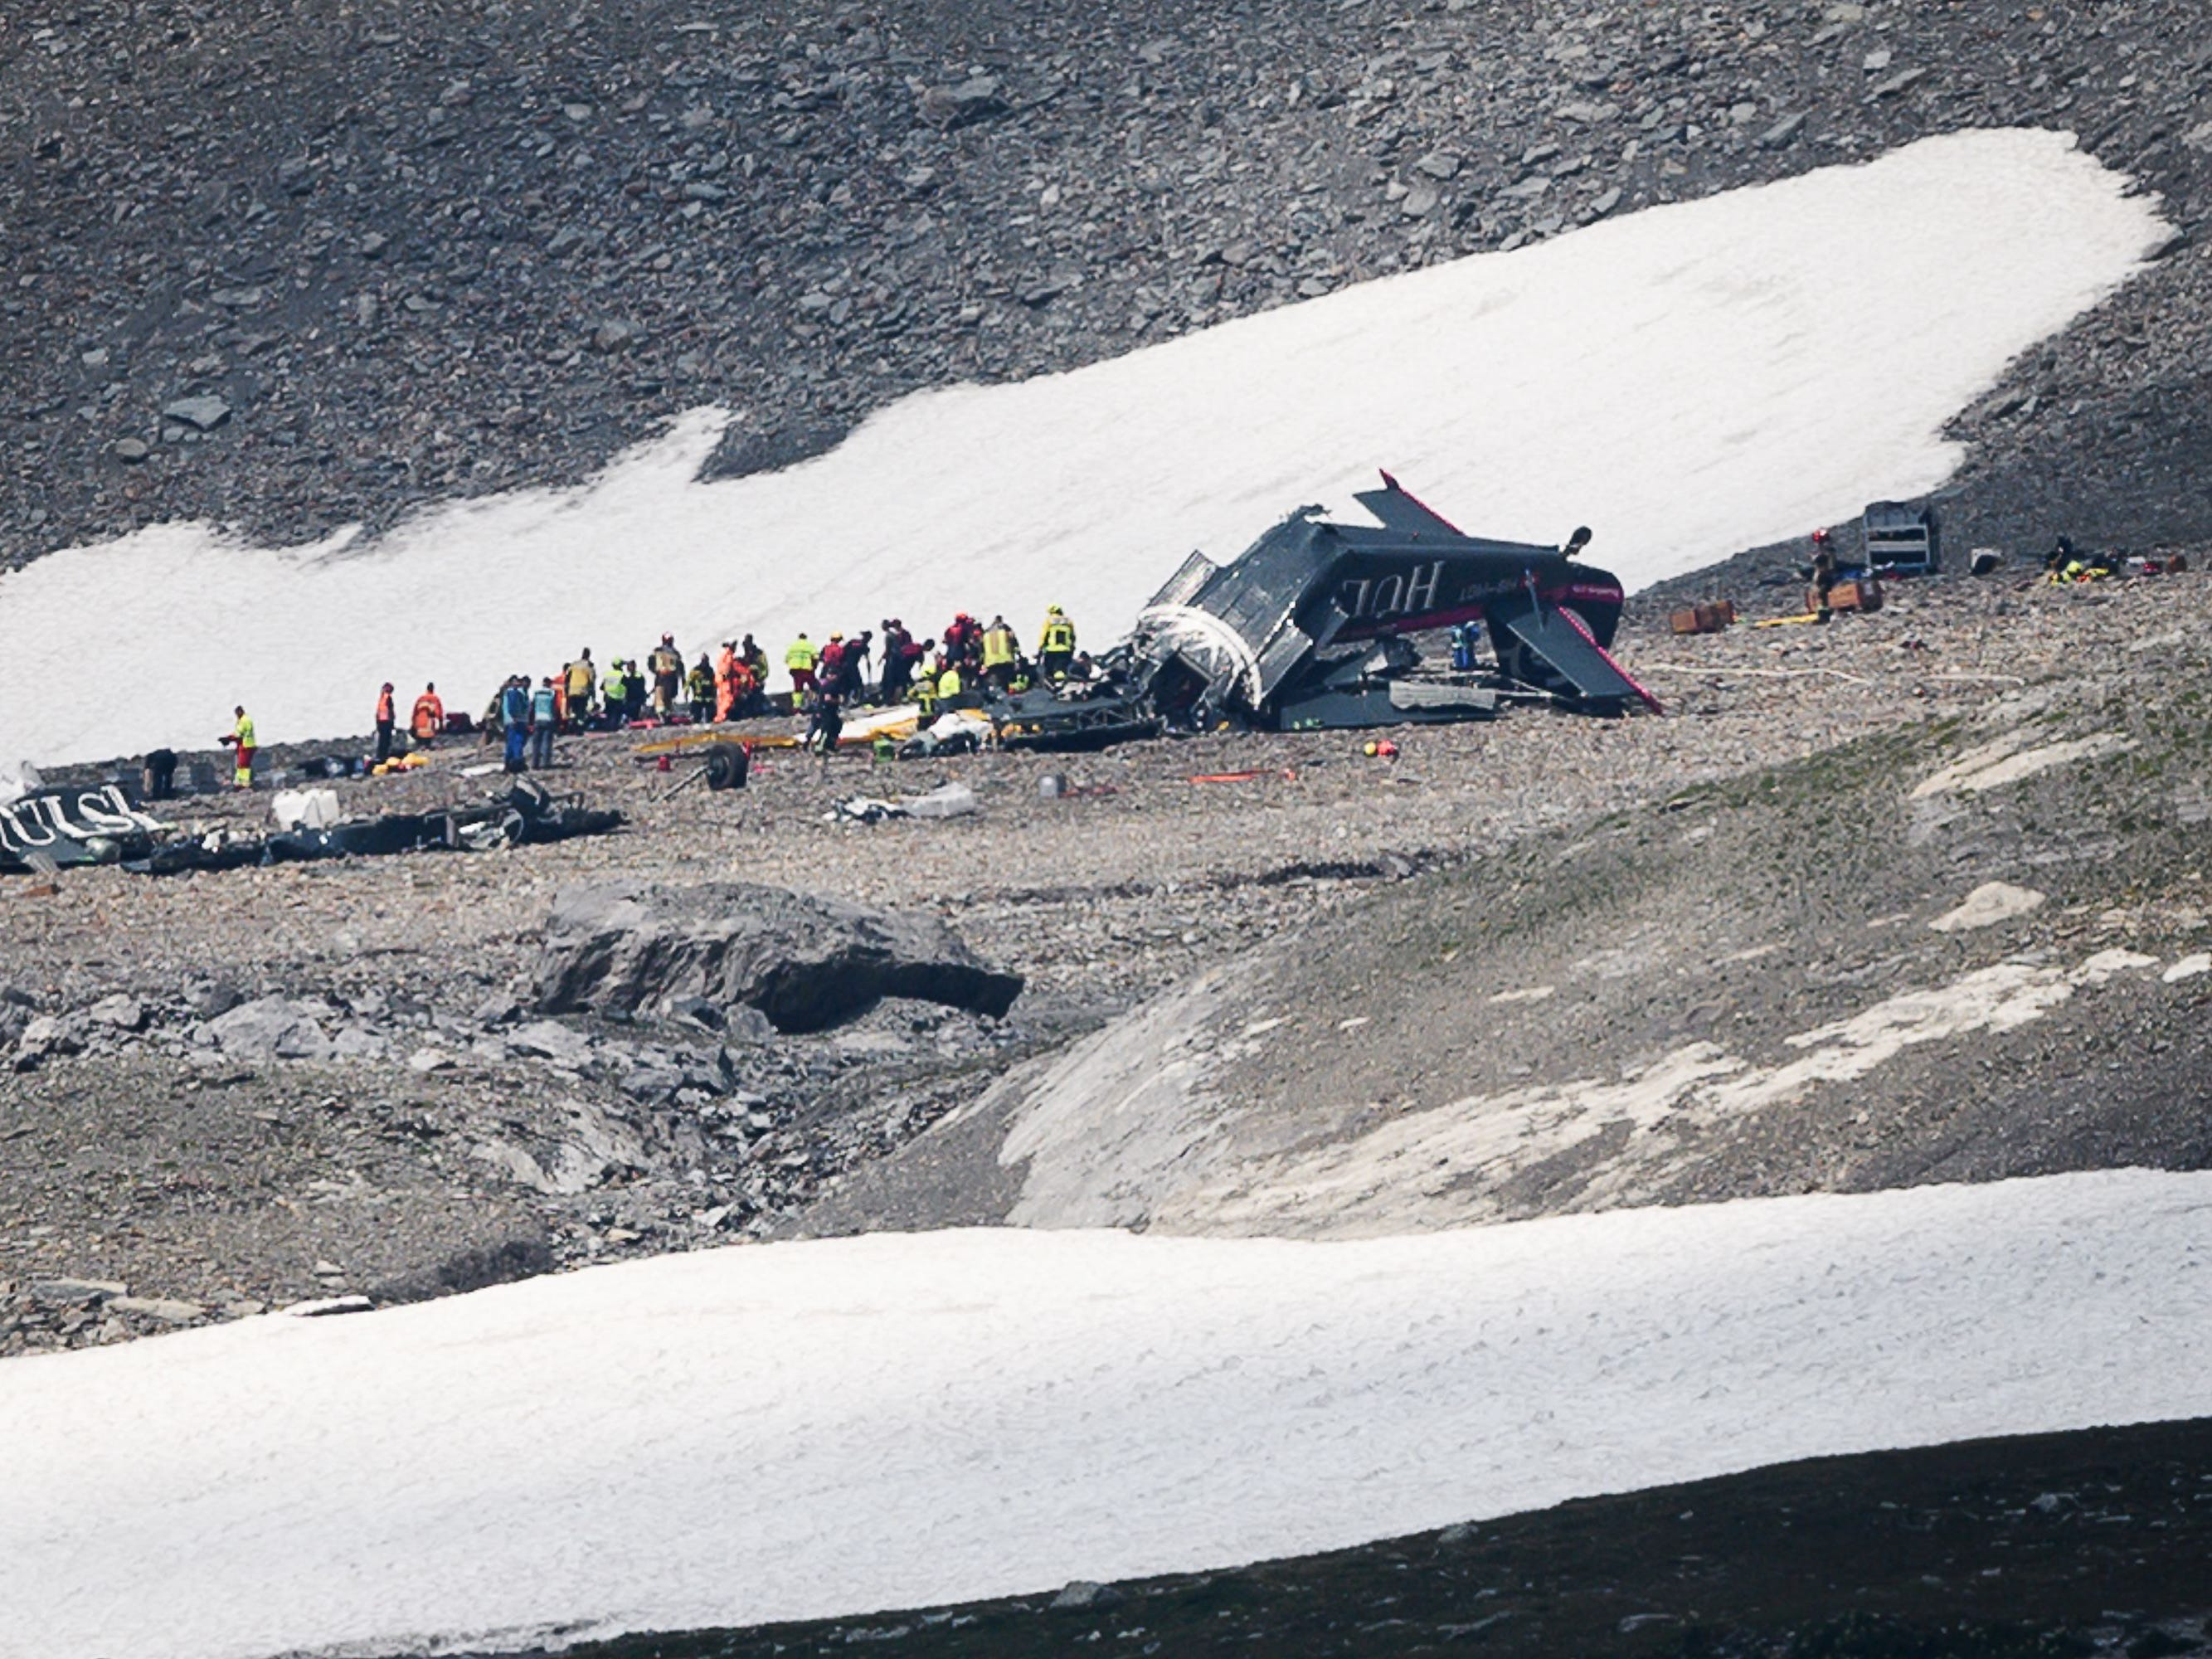 Accident investigators and rescue personnel work at the wreckage of a Junkers JU52 aircraft in Flims on Aug. 5, 2018, after it crashed into Piz Segnas, a 10,000-foot peak in eastern Switzerland on Aug. 4. Twenty people are confirmed dead after a vintage World War II aircraft crashed into a Swiss mountainside, police reports said. The Junker JU52 HB-HOT aircraft, built in Germany in 1939 and now a collectors item, belongs to JU-Air, a company with links to the Swiss air force, the ATS news agency reported.